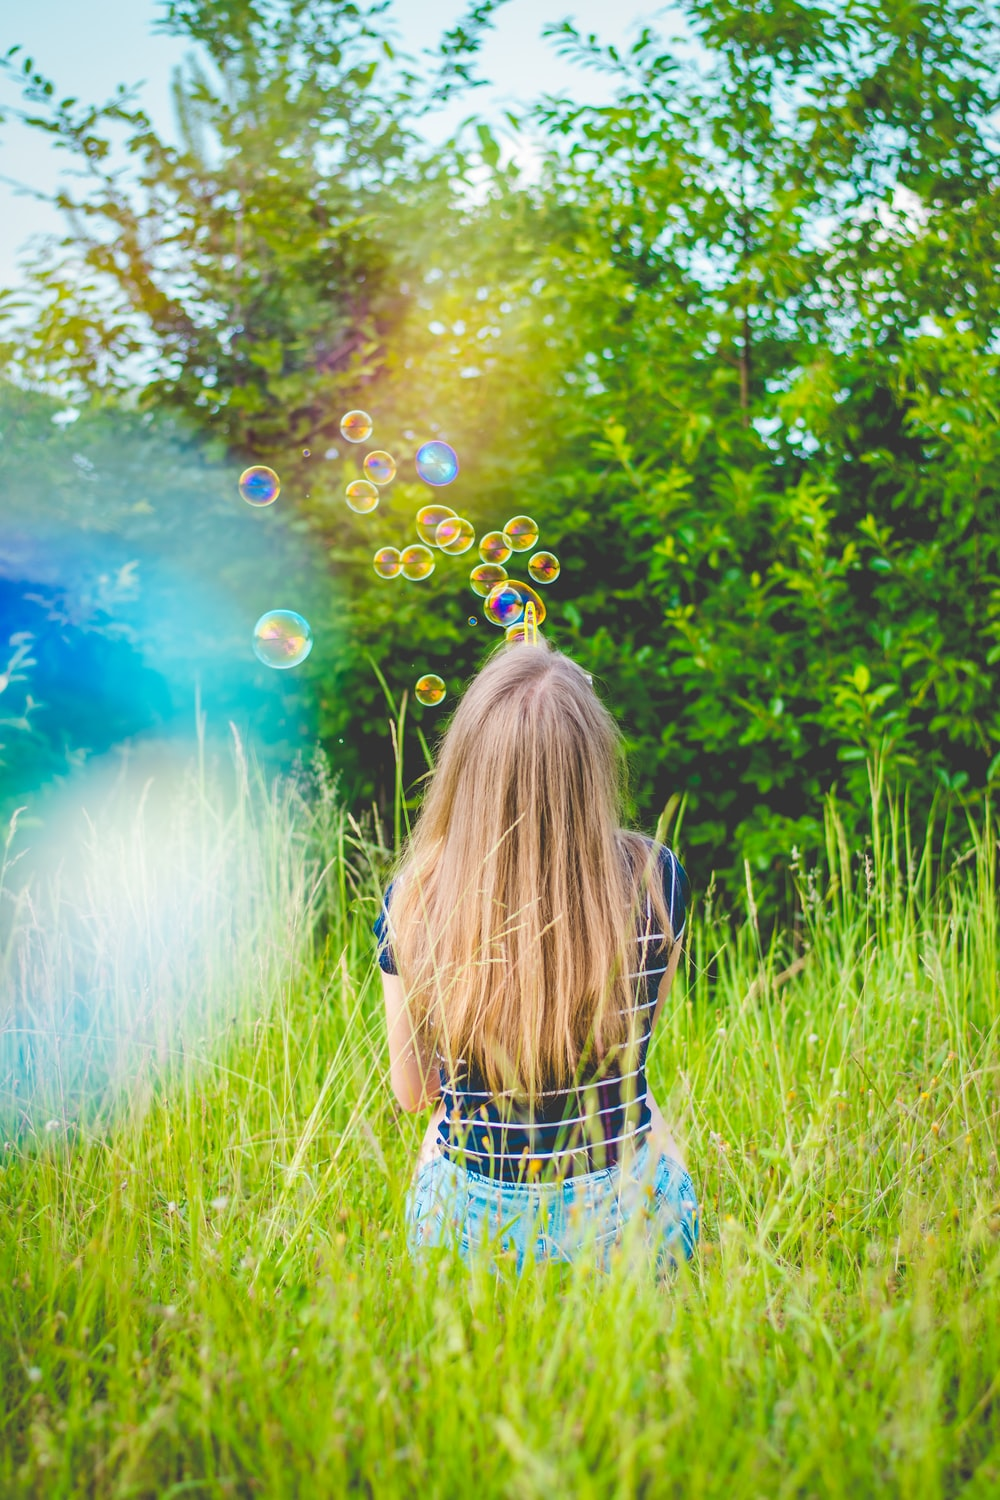 girl sitting while playing bubbles on green grass field near green leaf trees during daytime